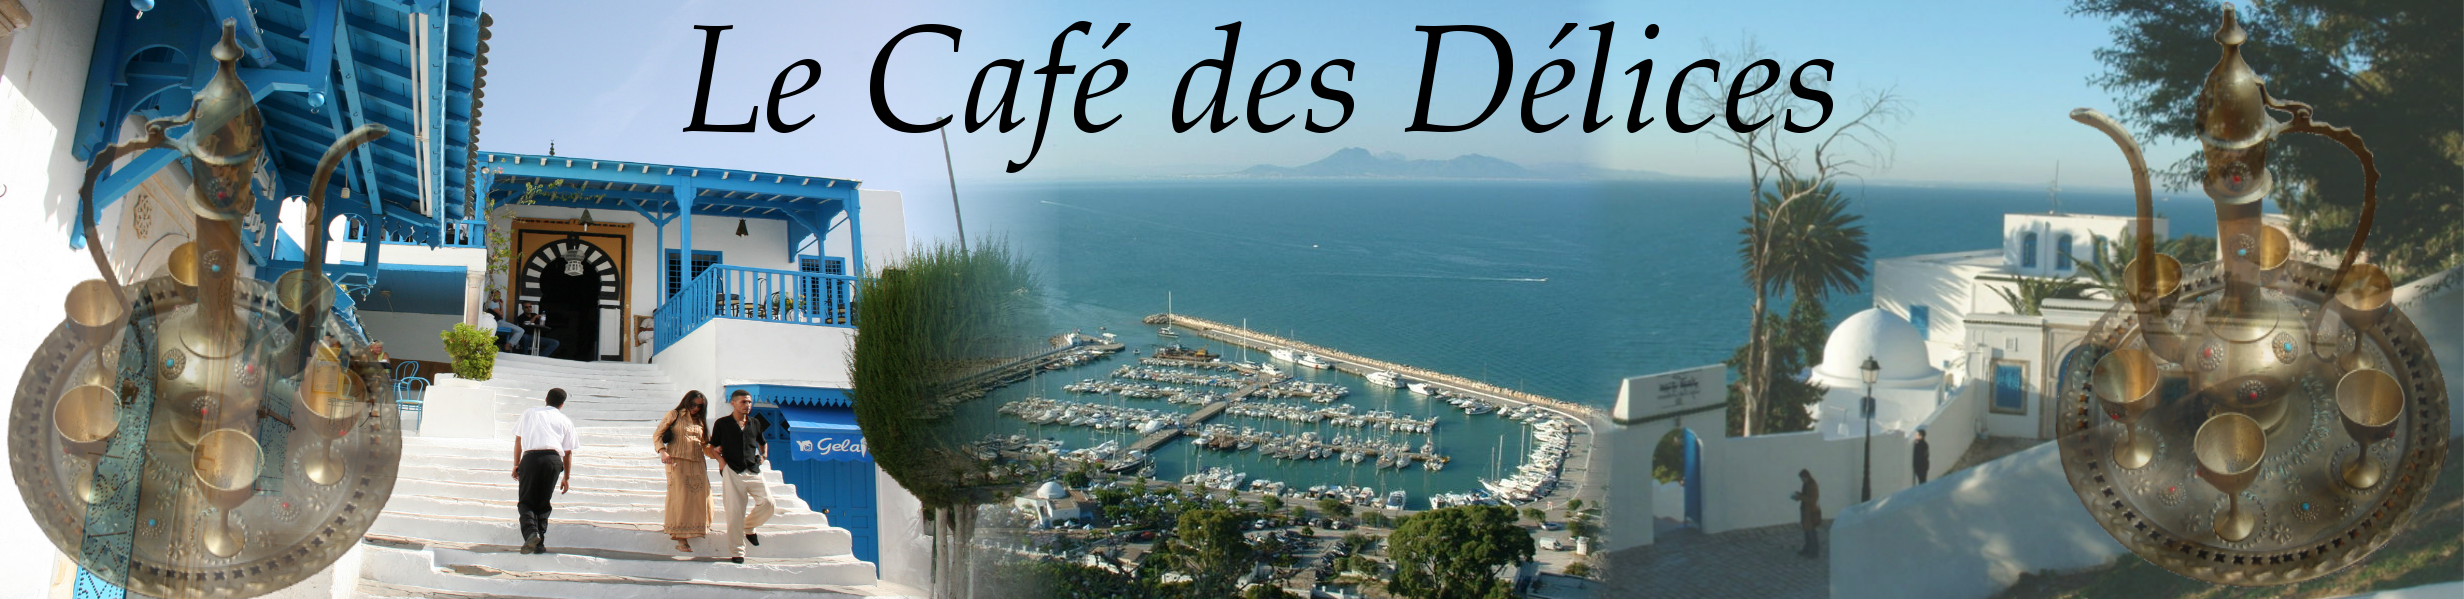 http://upload.wikimedia.org/wikipedia/commons/archive/e/e4/20070608041500!Bandeau_Café_des_Délices.png